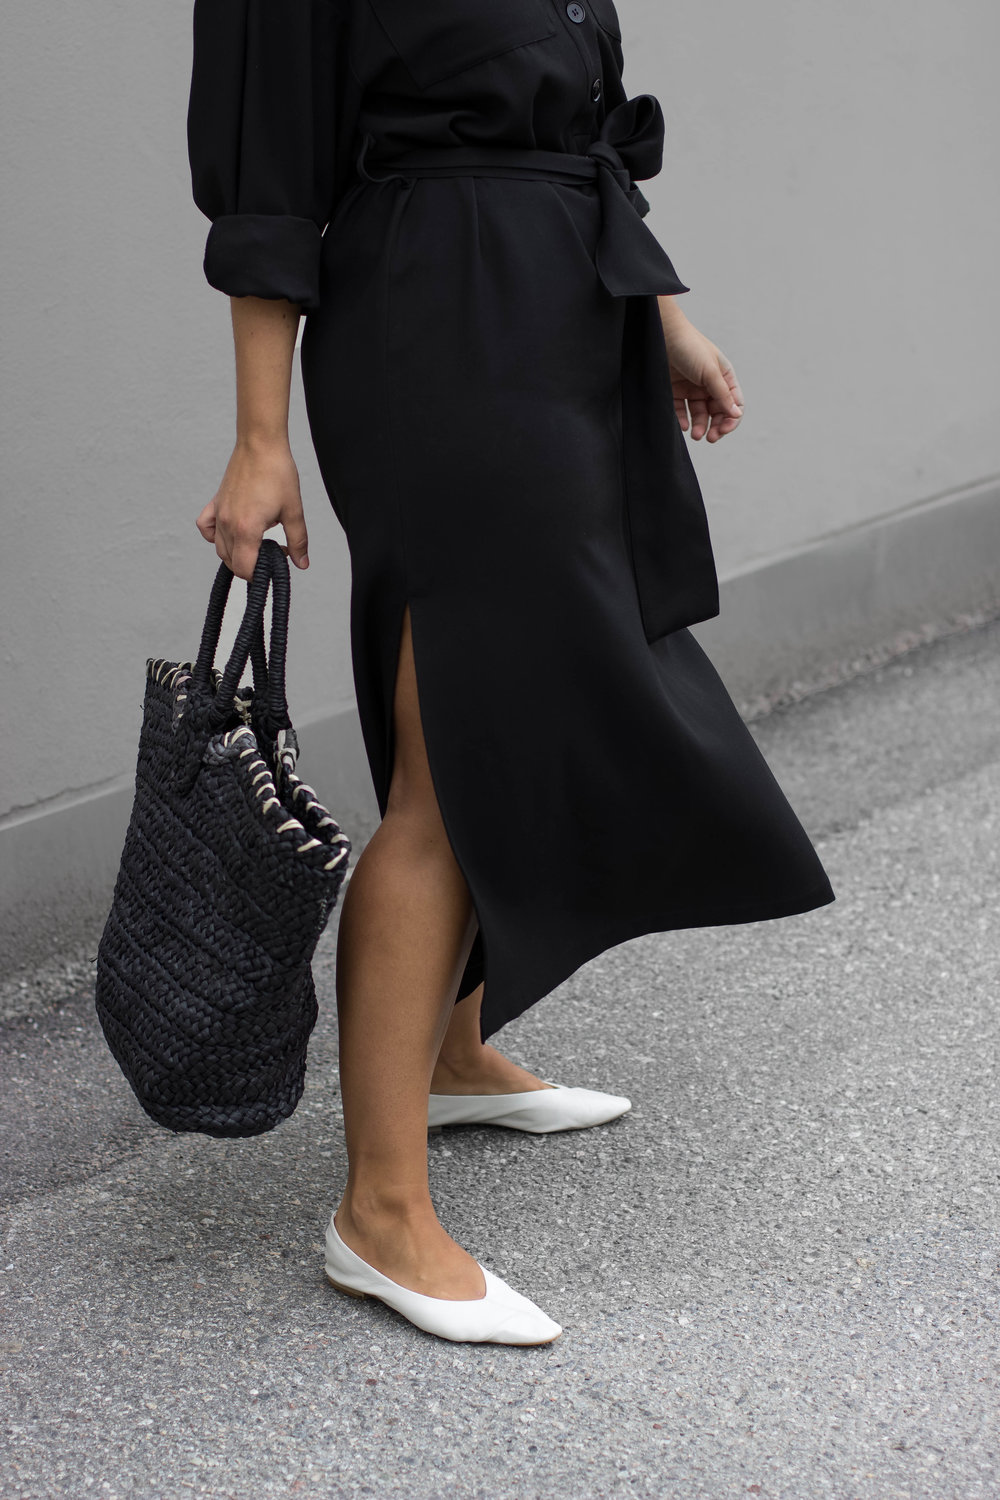 WEARING// Dress H&M / Shoes MANGO / Straw Bag    WOMEN'S SECRET